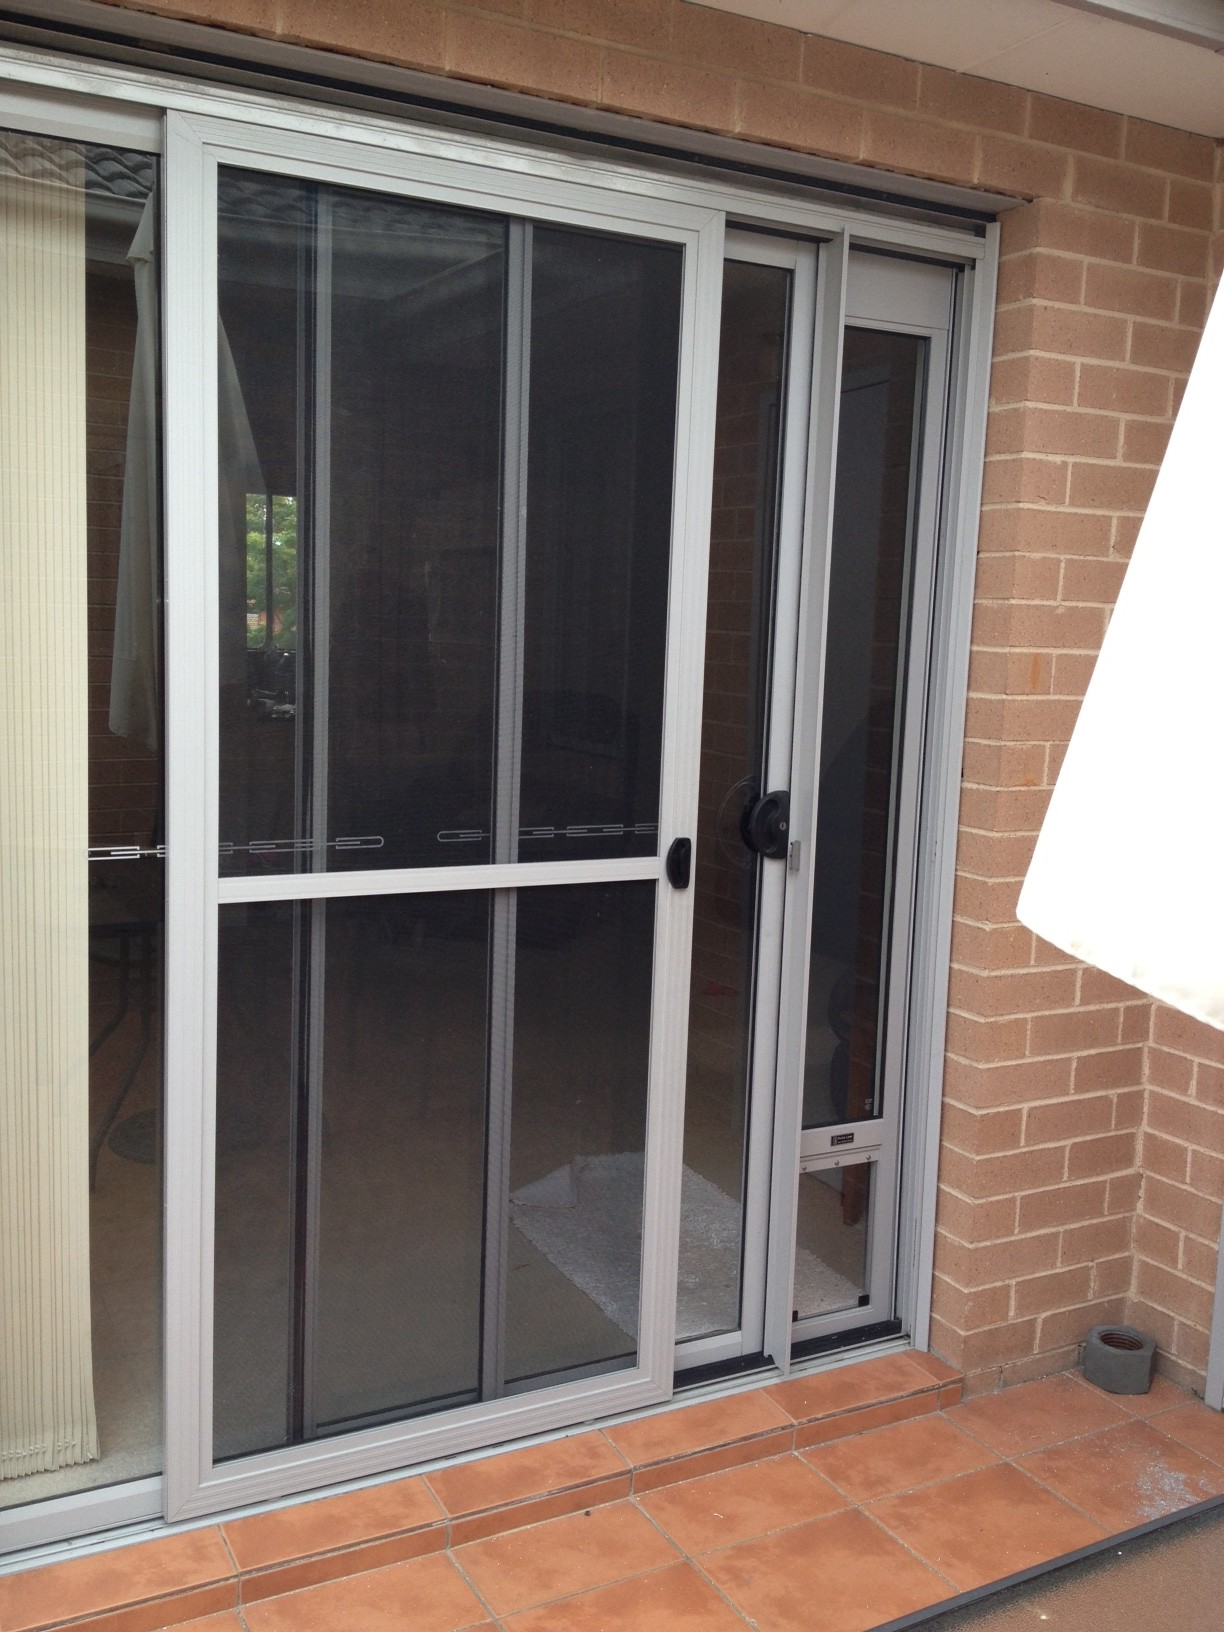 Patio Pet Door Inserts for Sliding Doors, Fully Lockable,Fast Delivery